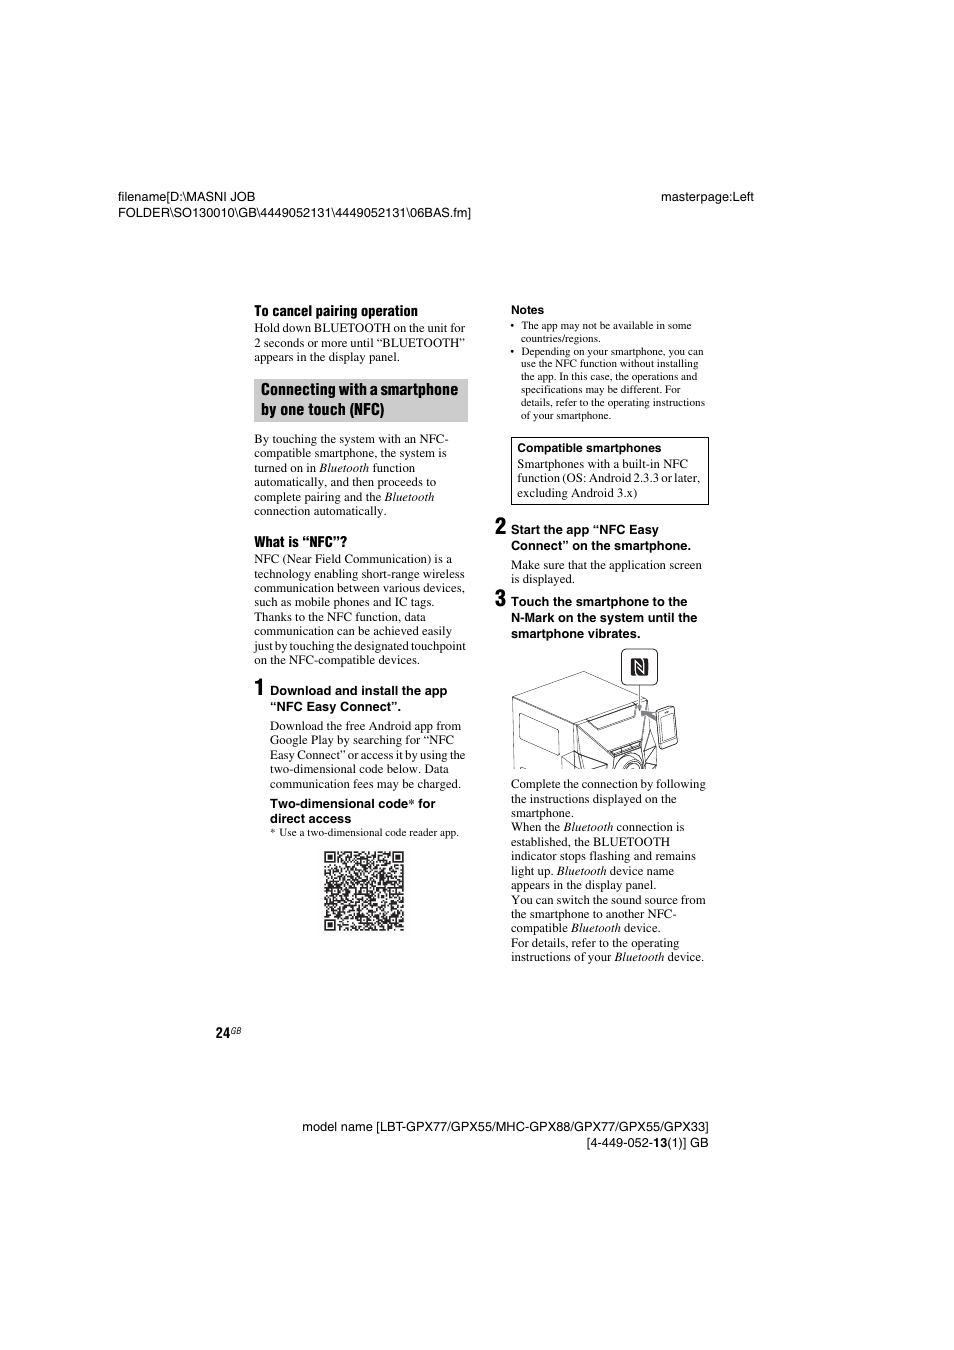 sony lbt gpx55 user manual page 24 44 original mode also for rh manualsdir com Sony ICF-C318 Manual English Sony Operating Manuals